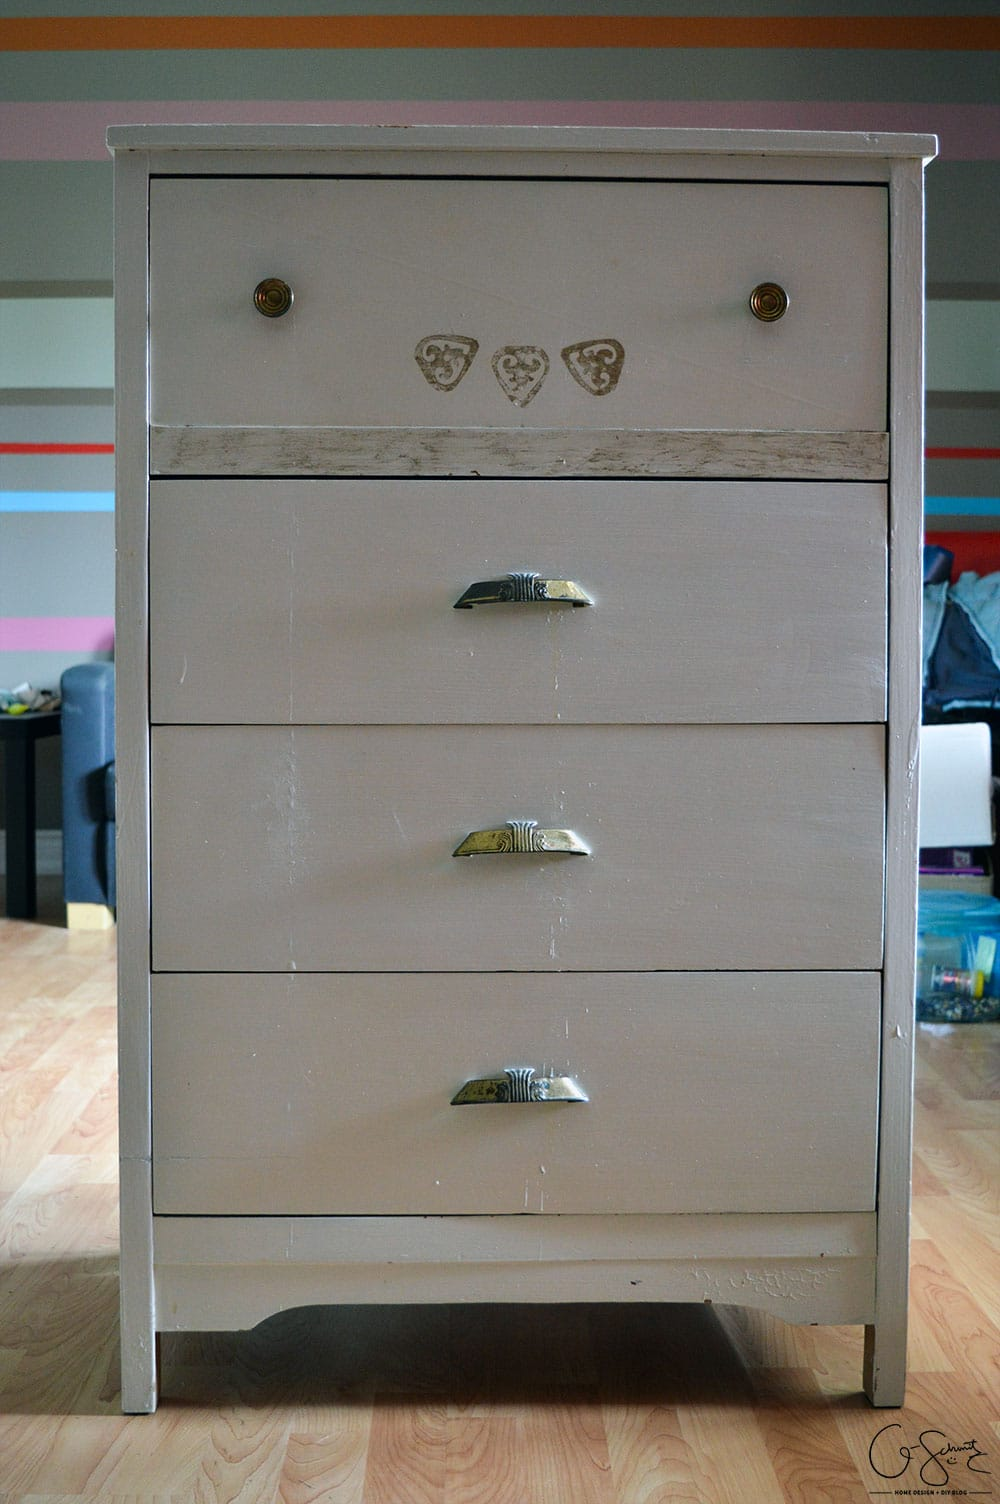 Sometimes you don't need to do a huge DIY to get the furniture look you want. See how a dresser mini-makeover can work just as well!